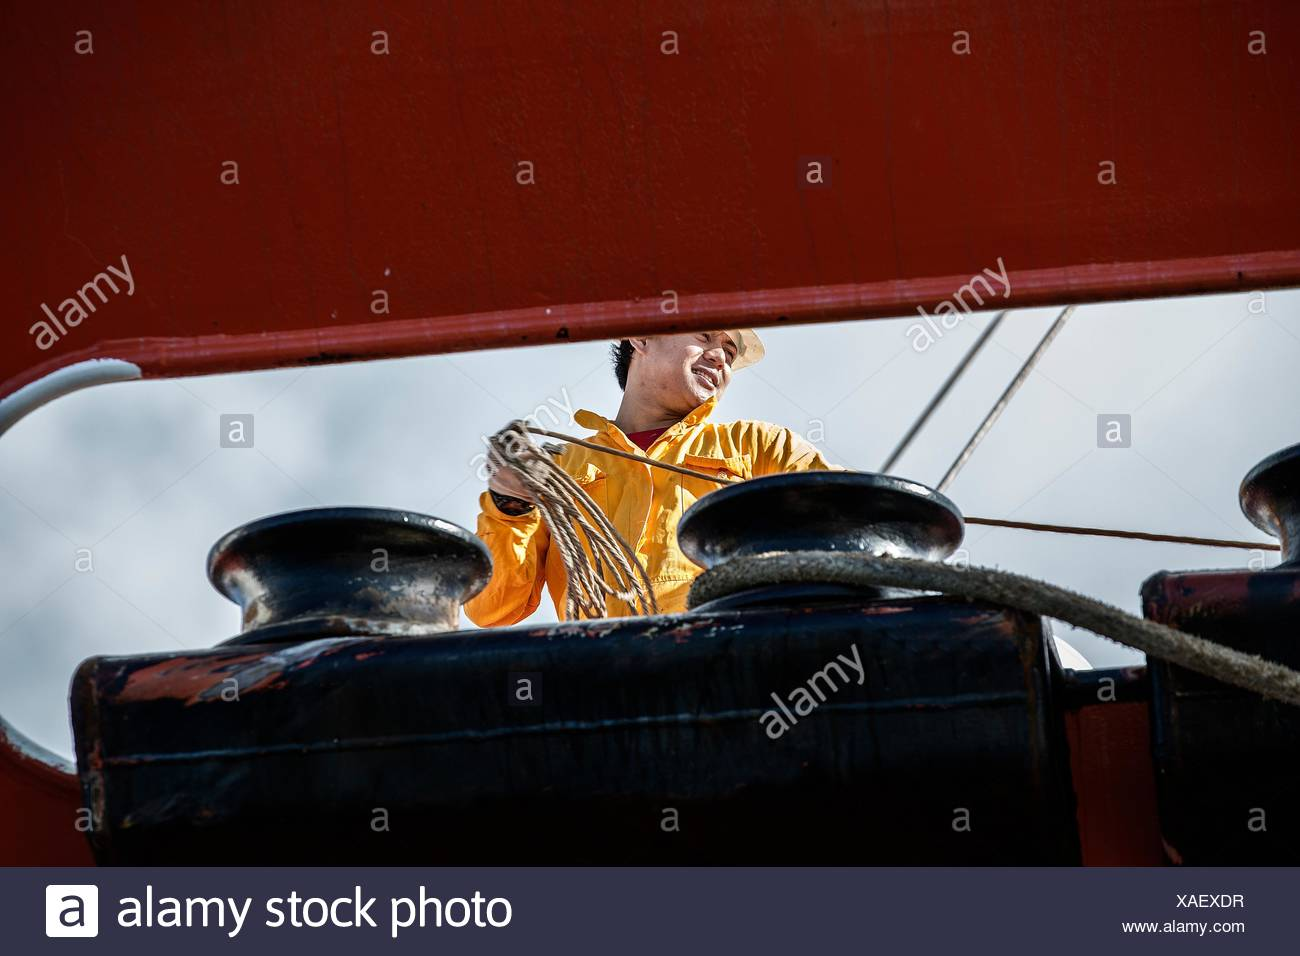 Worker fastening ropes to mooring posts on board oil tanker - Stock Image